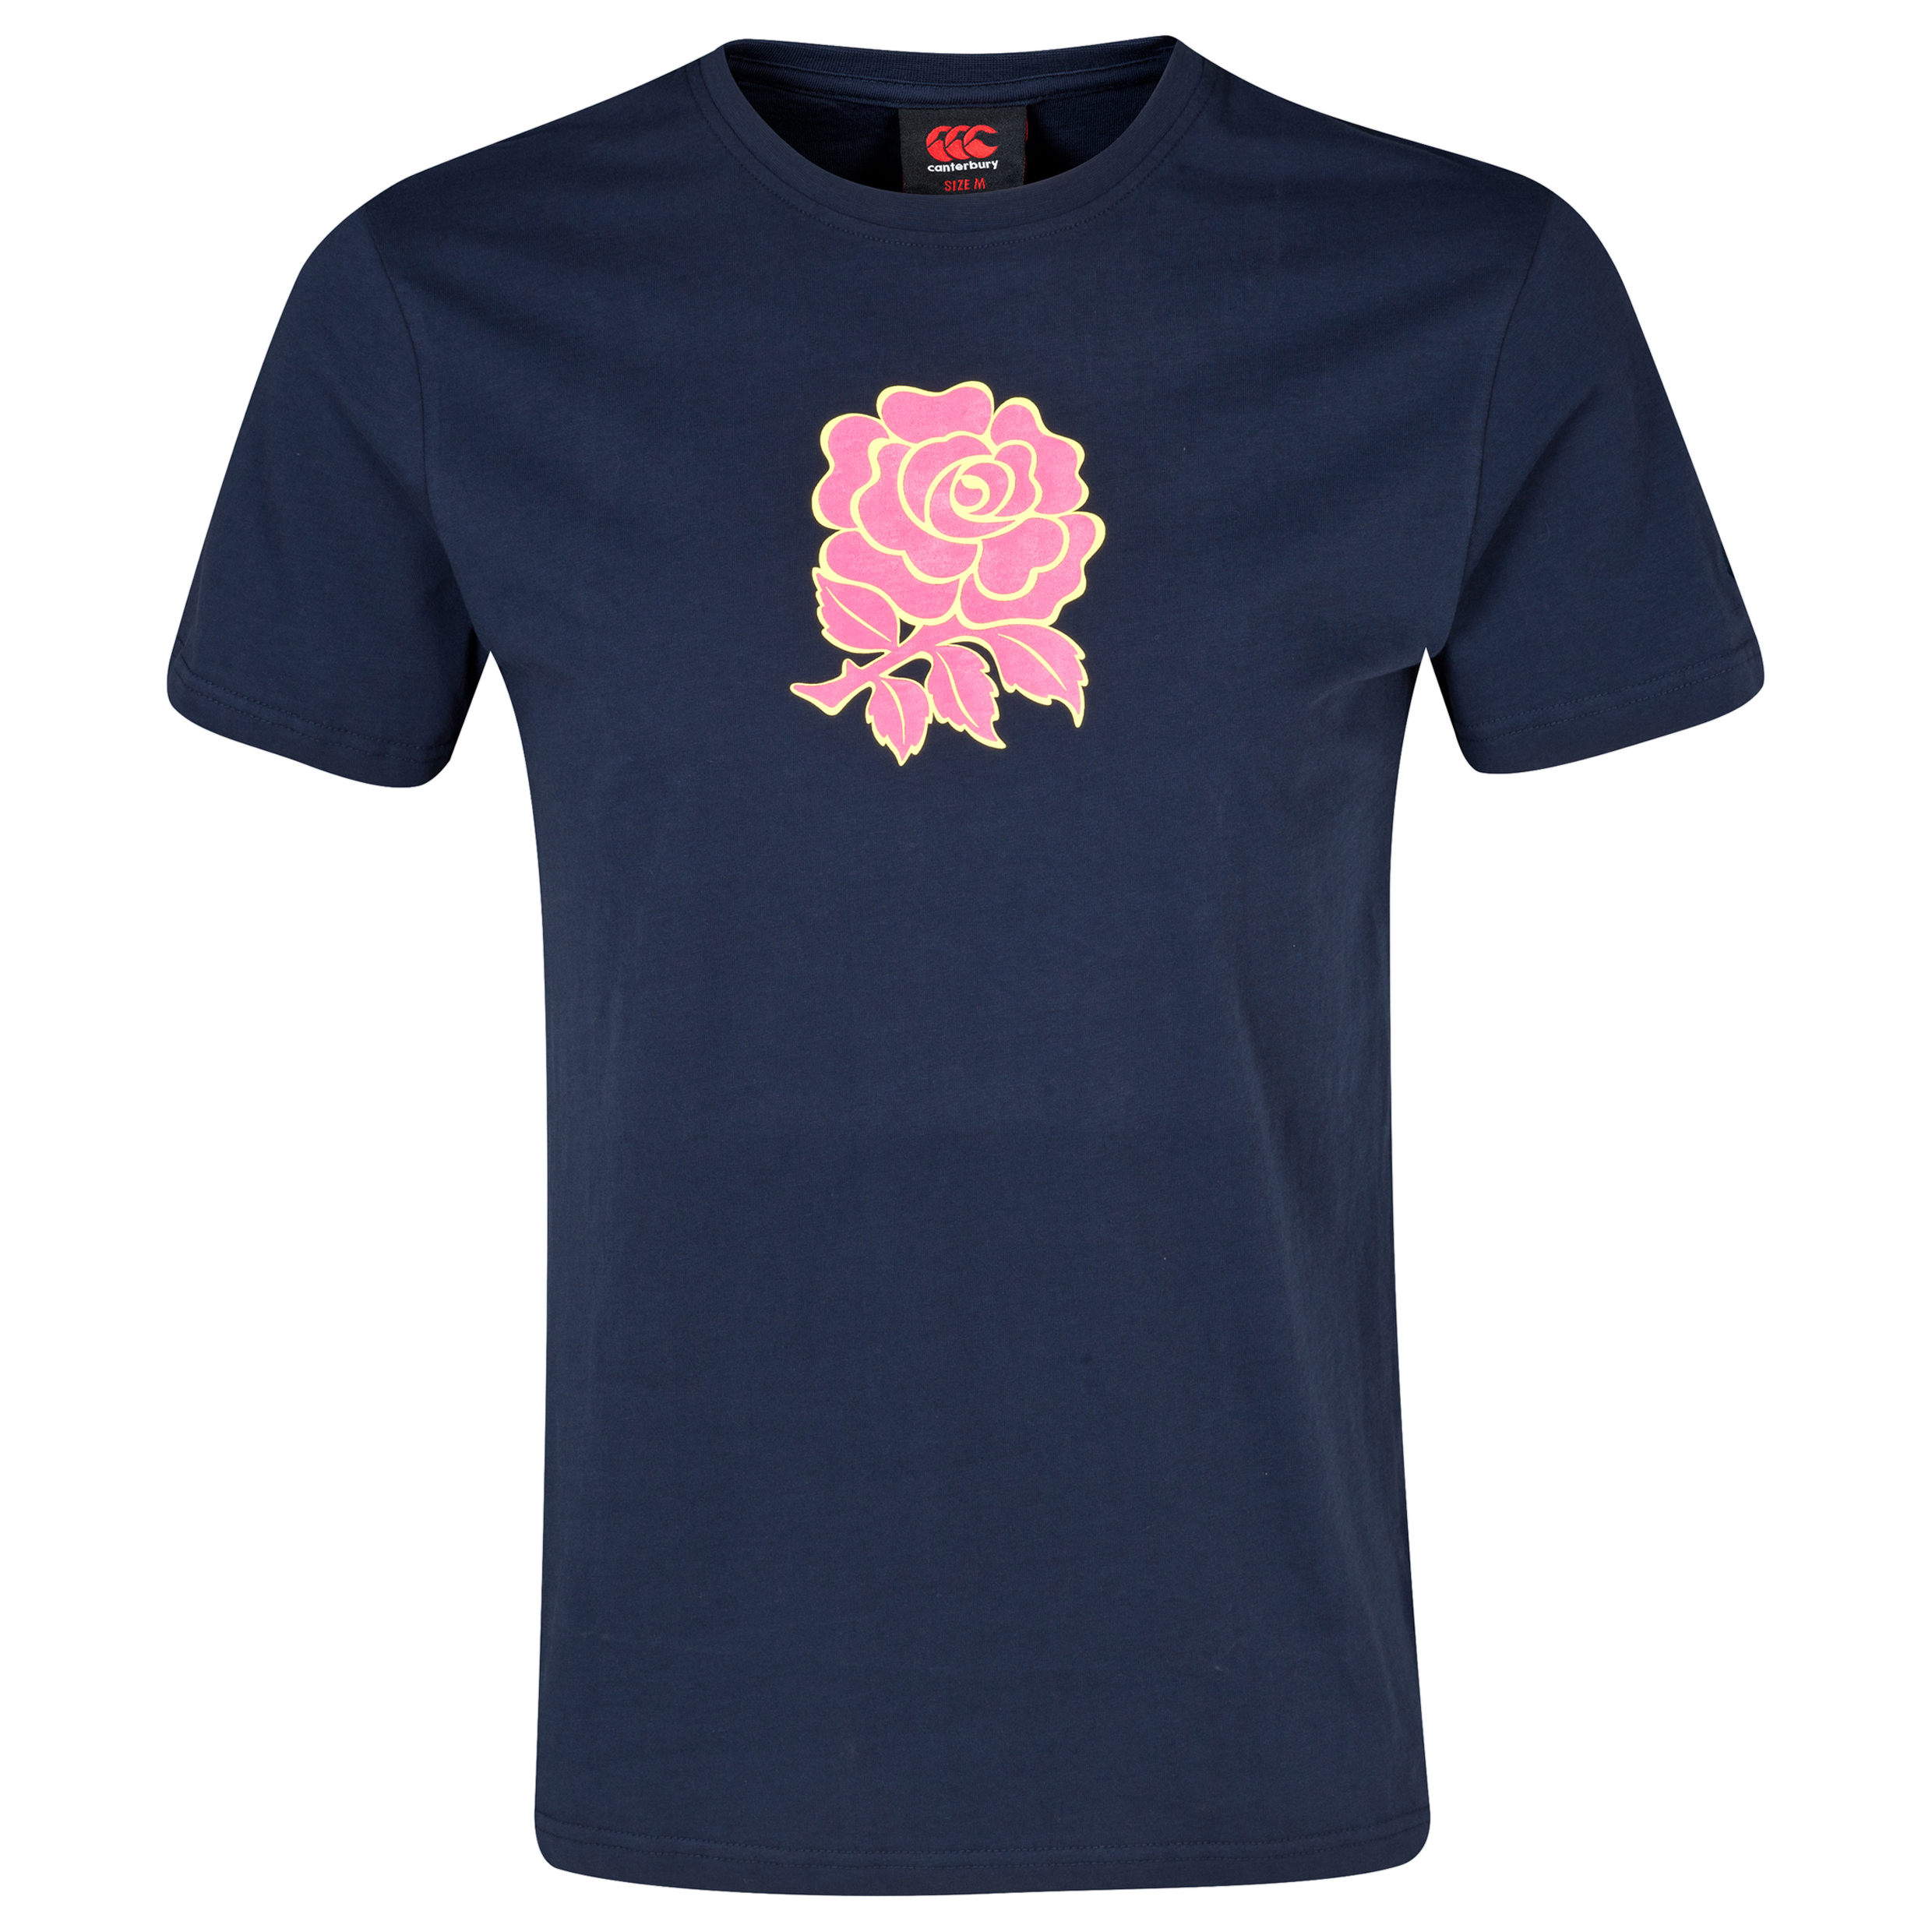 England Uglies Rose Graphic Cotton T-Shirt Navy